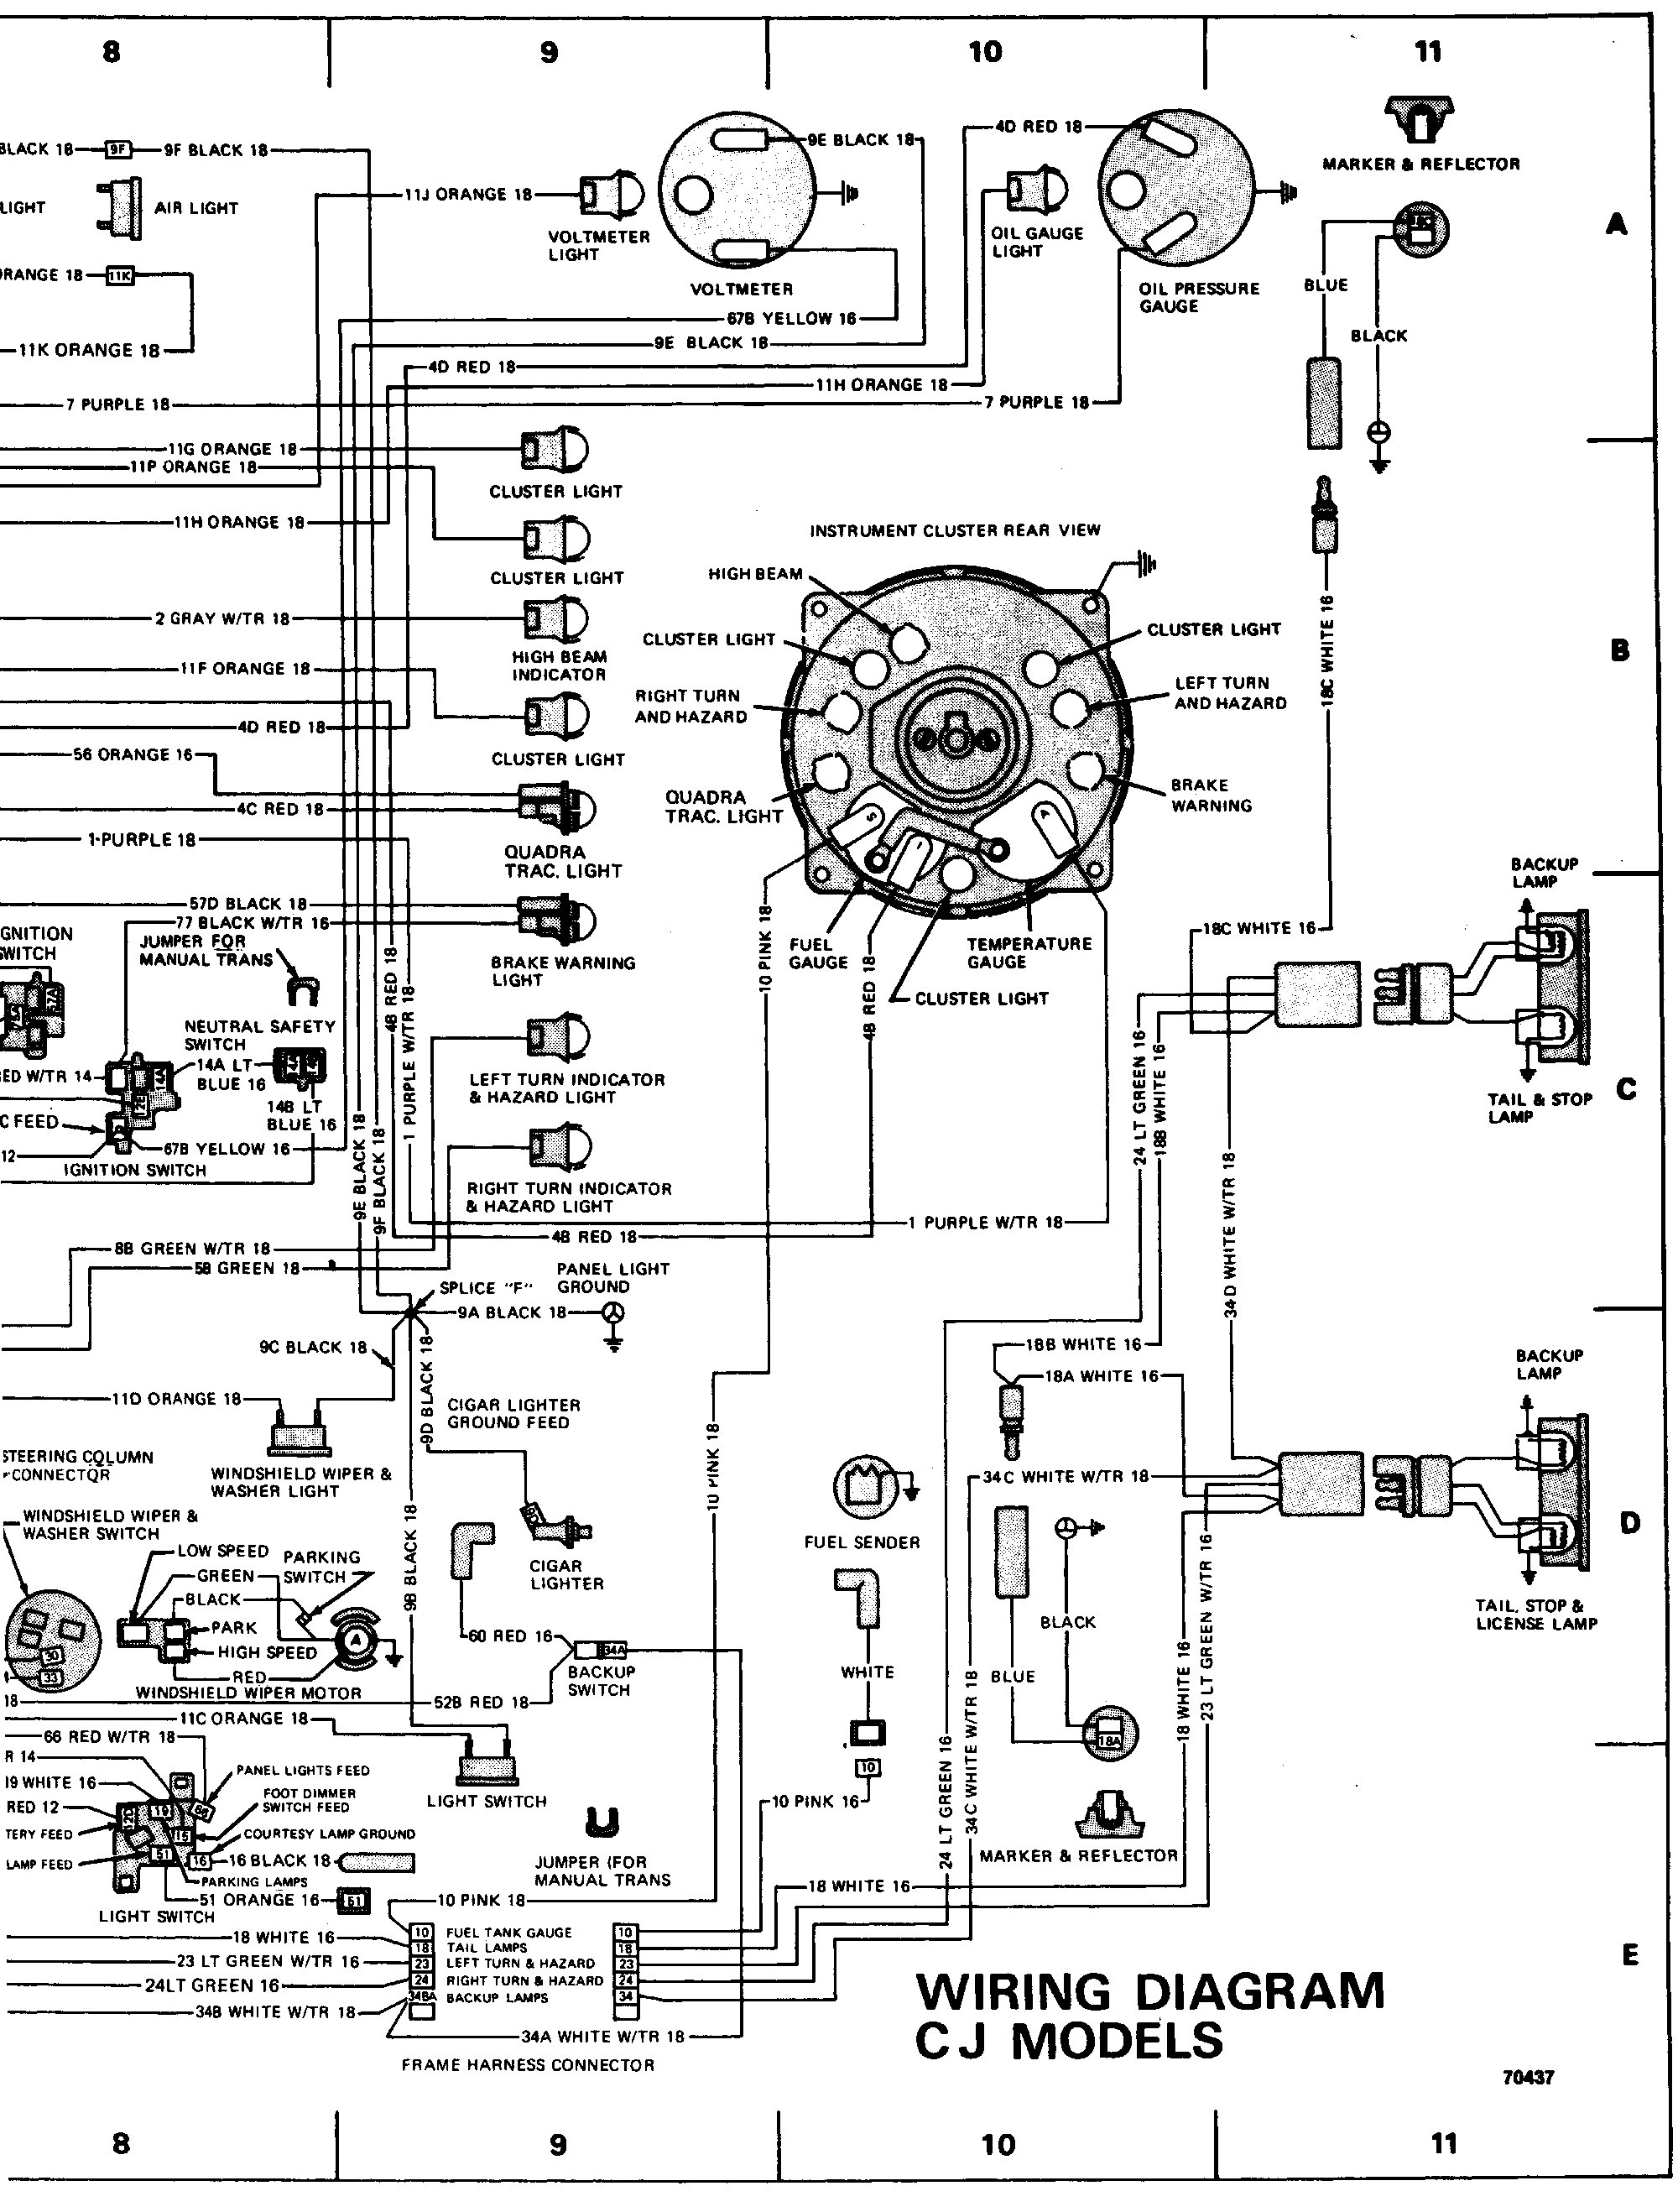 Gm 5 3 Wiring Harness Conversion • Wiring Diagram For Free